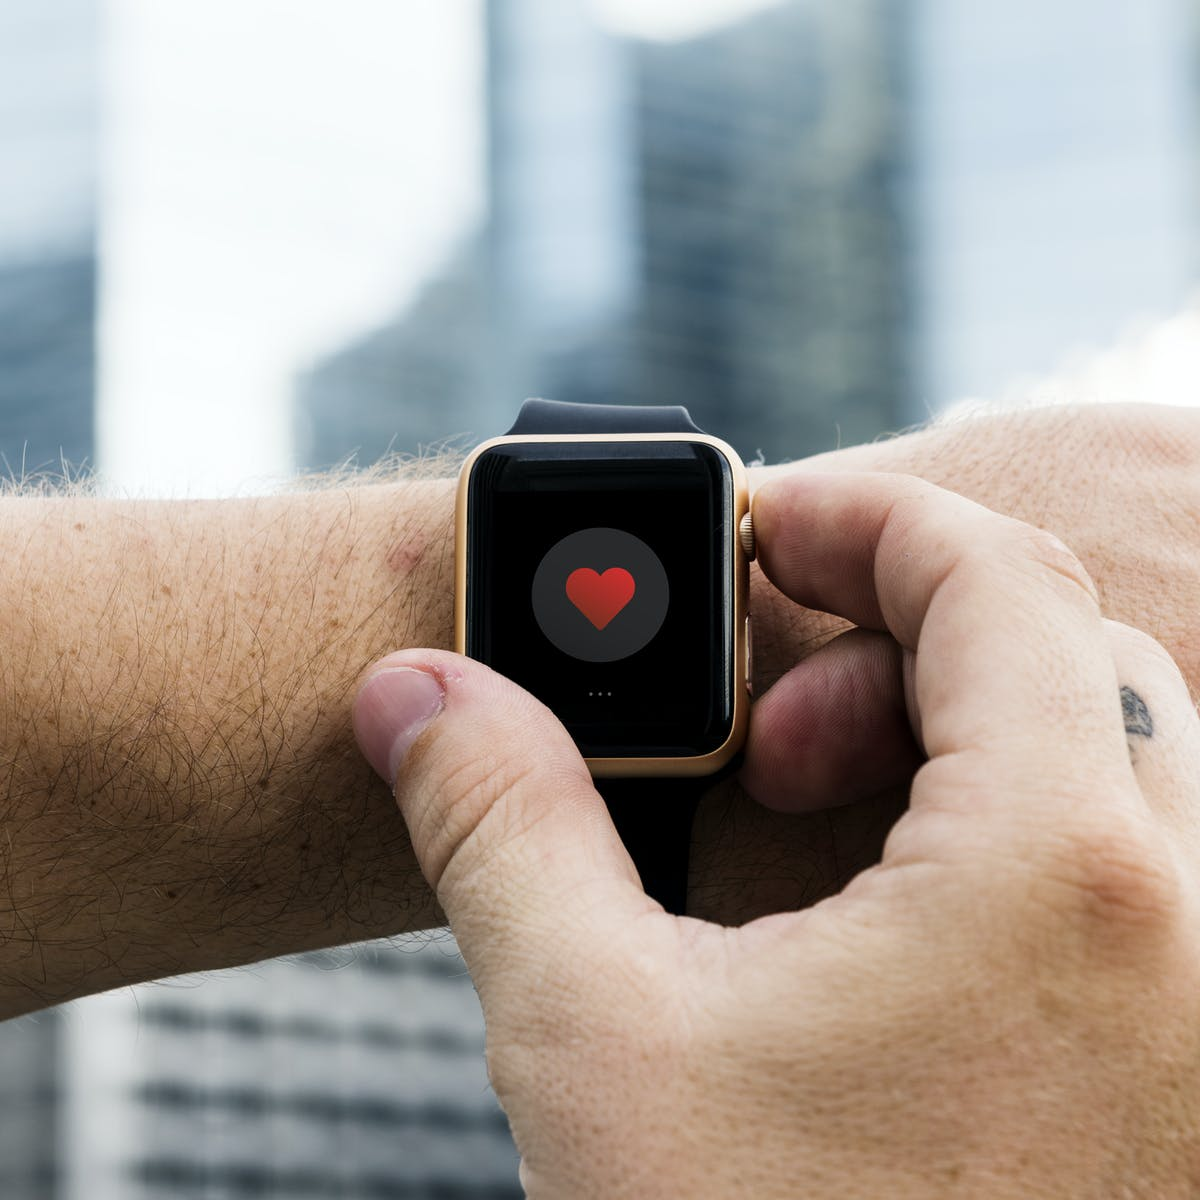 Apple Watch Series 4: How to Get New Heart Rate Monitor Outside of the U.S.